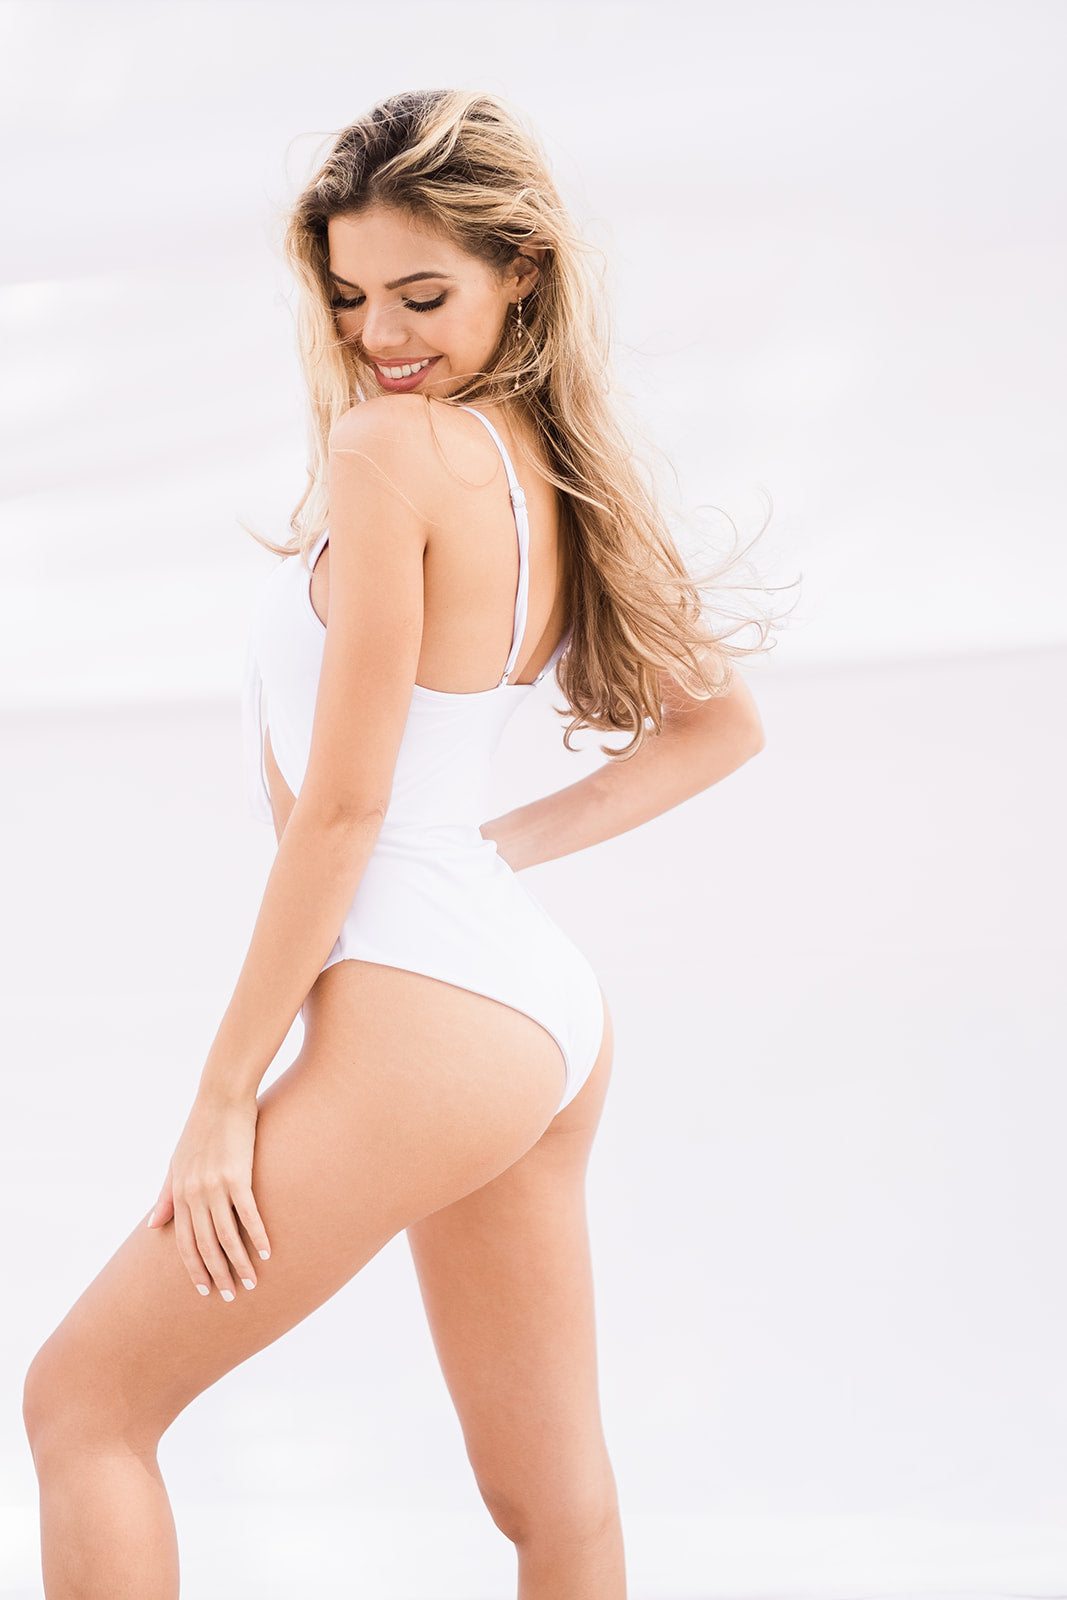 The Malibu One Piece Bathing Suit - The Beach Bride by Chic Parisien, a destination for beach weddings, bachelorettes and honeymoons